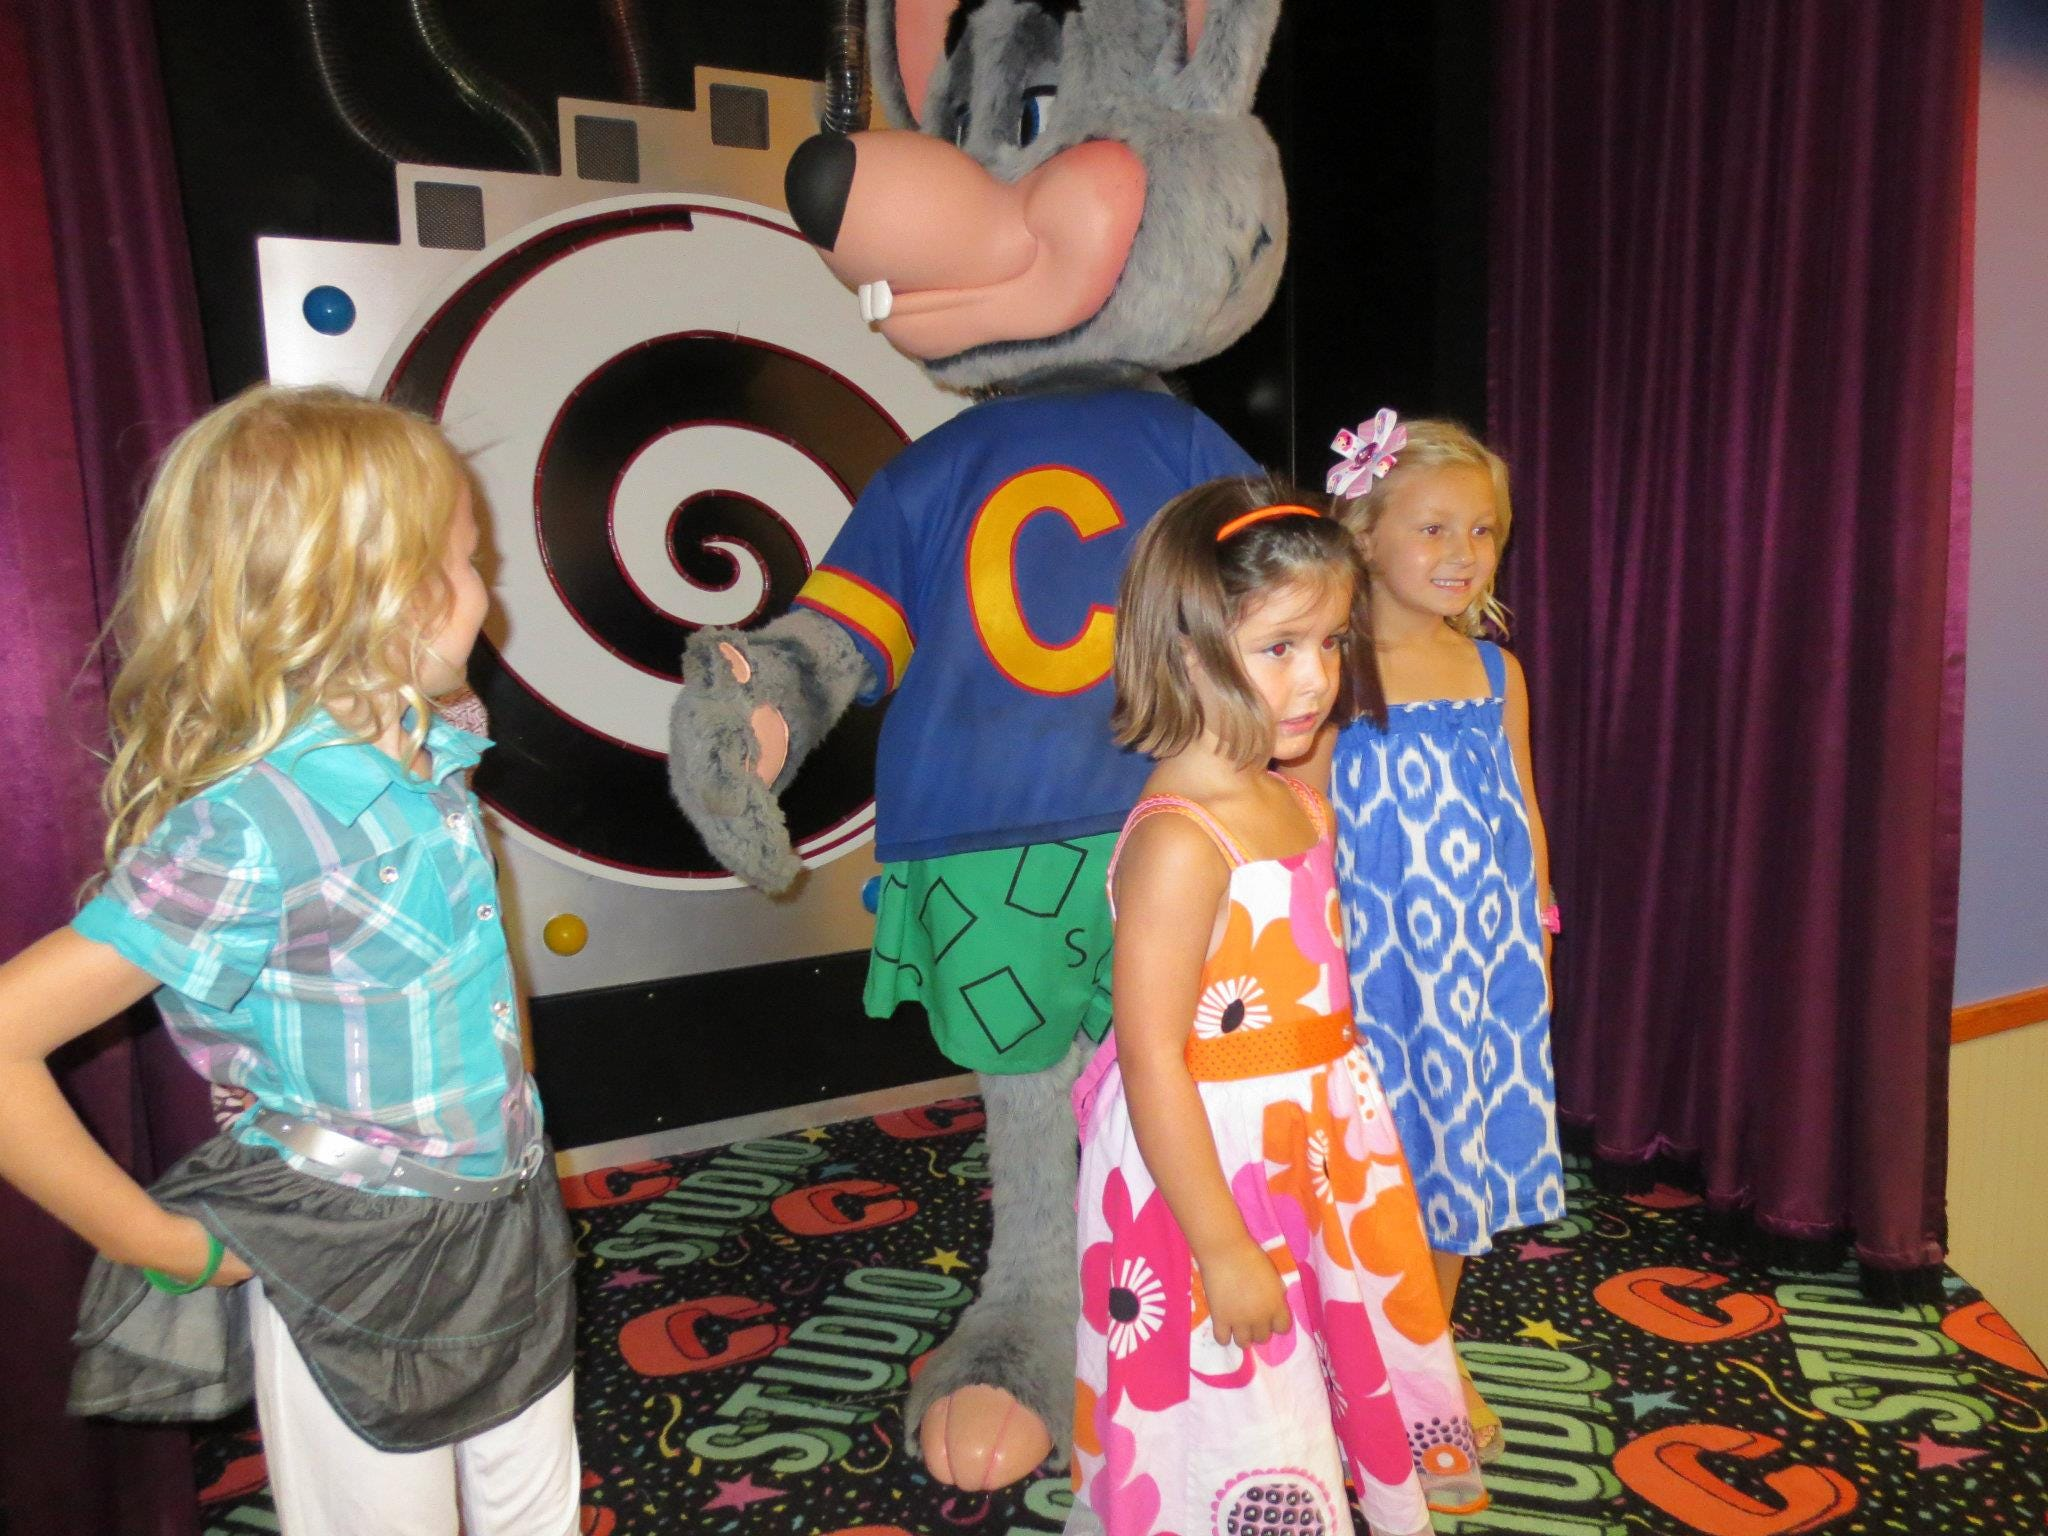 75 Phoenixarea spots for your childs birthday party